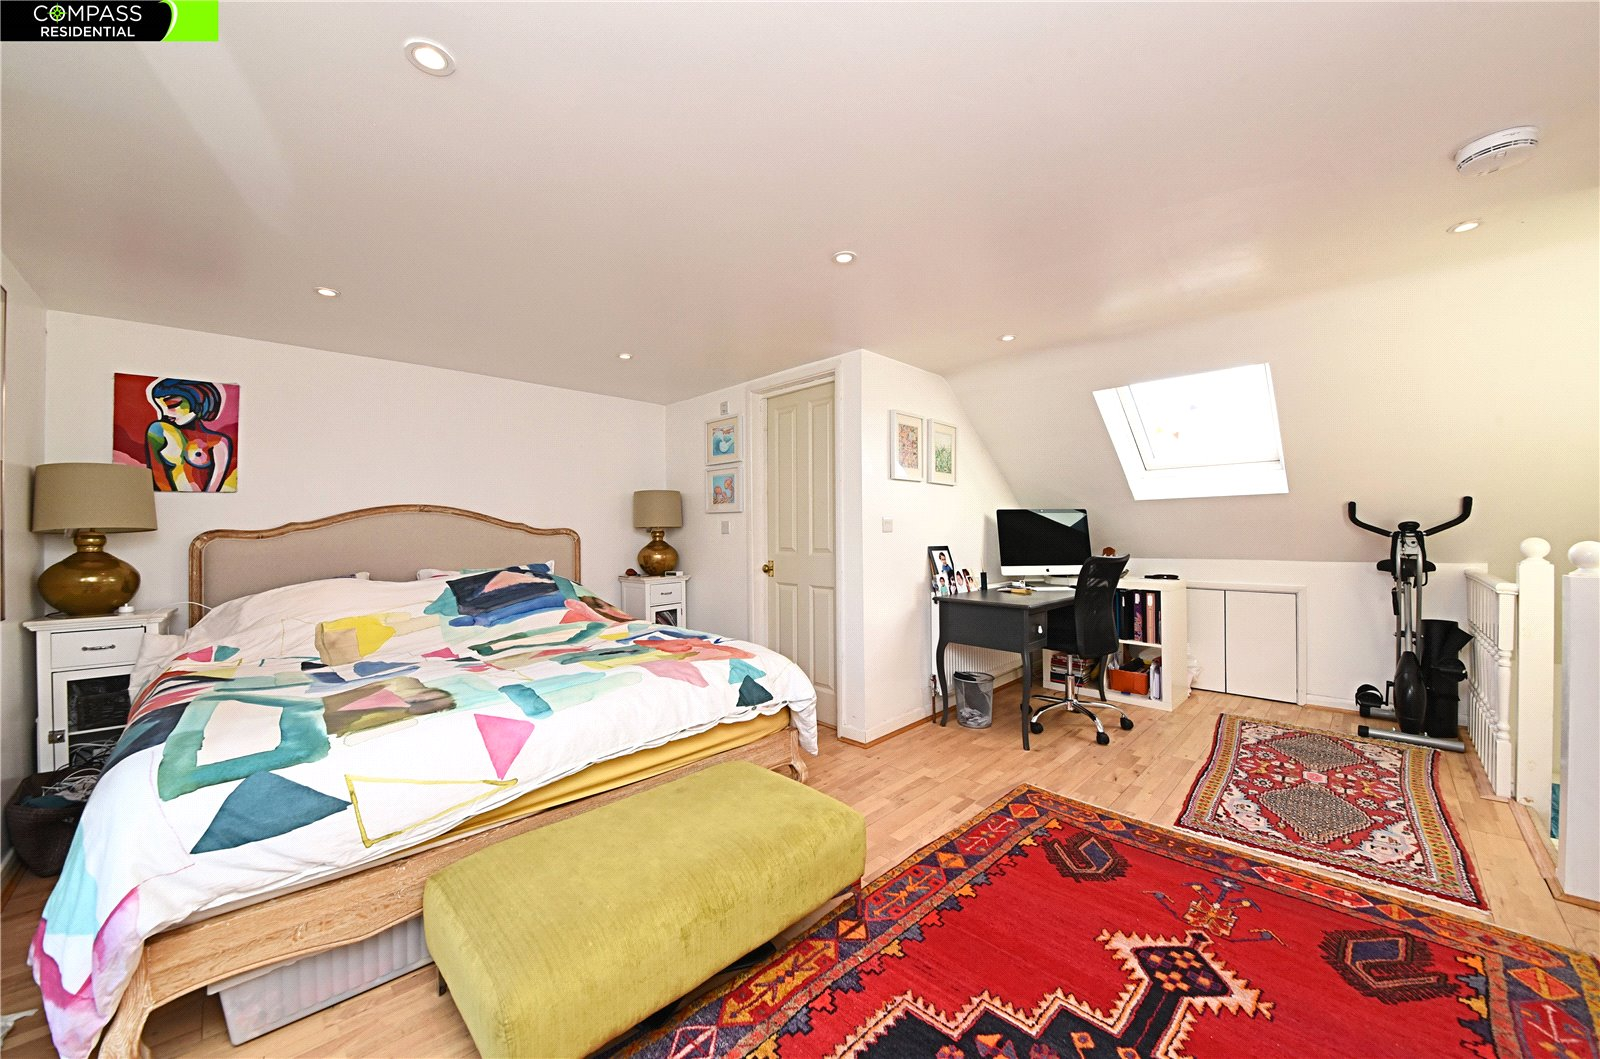 4 bed house for sale in Whetstone, N20 0HJ  - Property Image 5